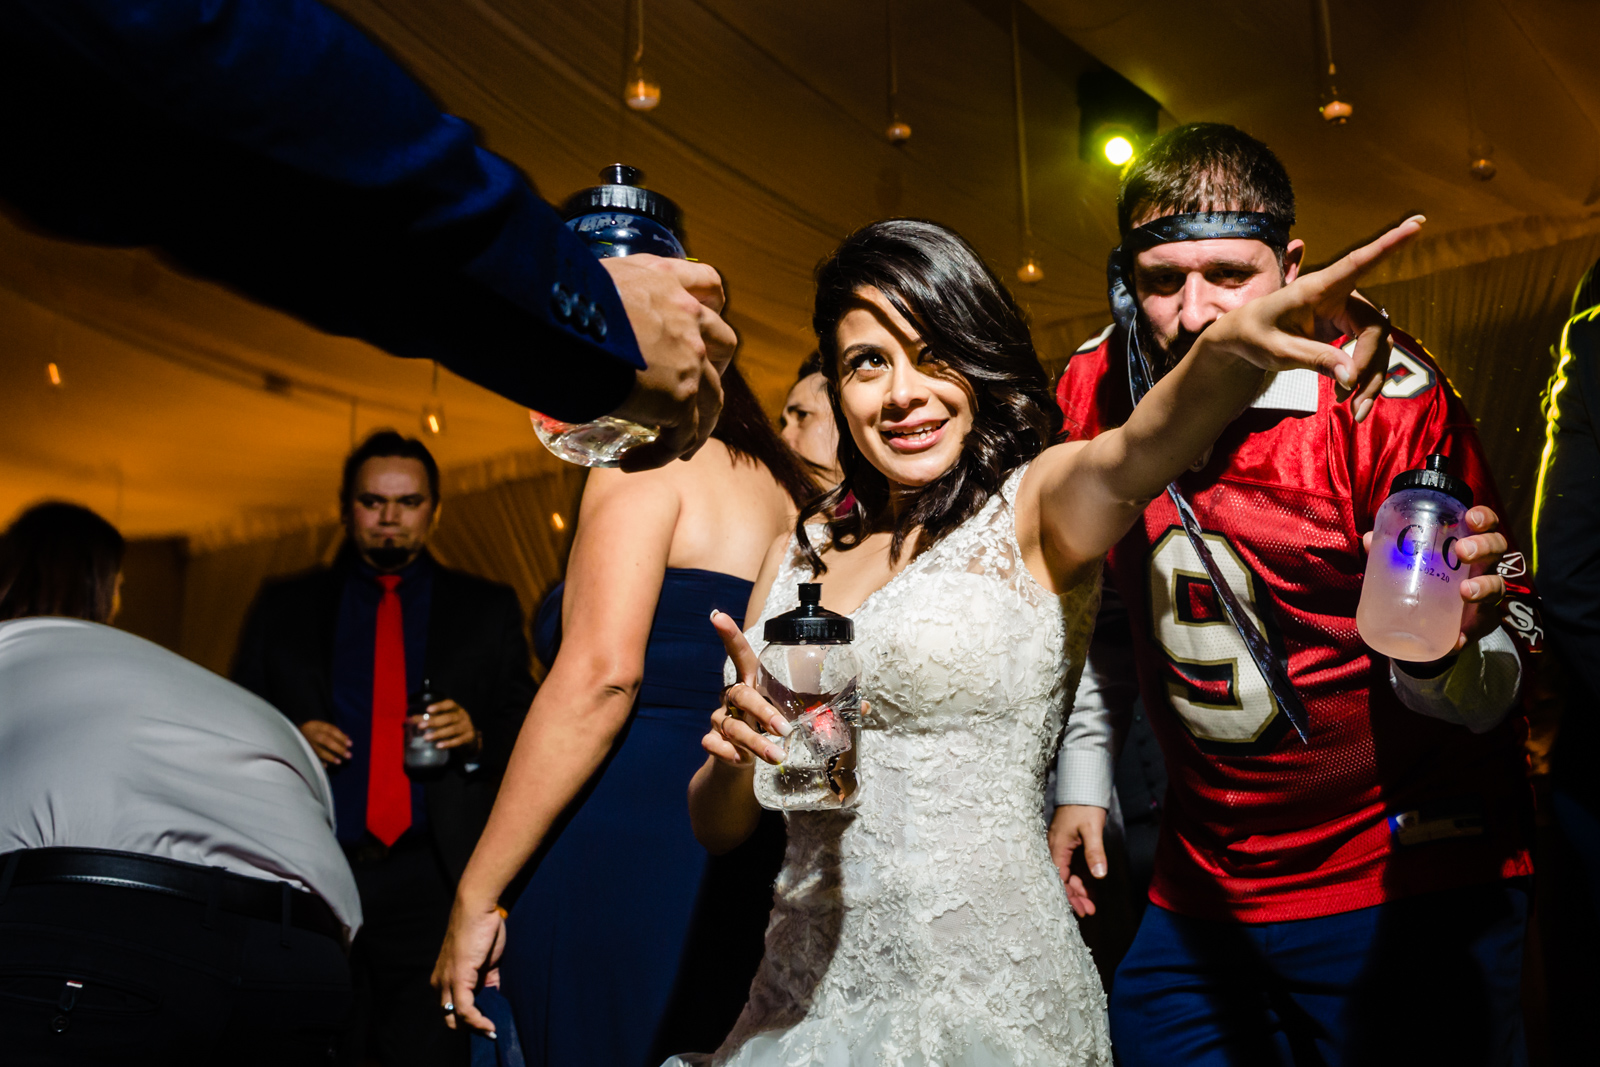 bride having fun on the dance floor dancing and drinking with friends